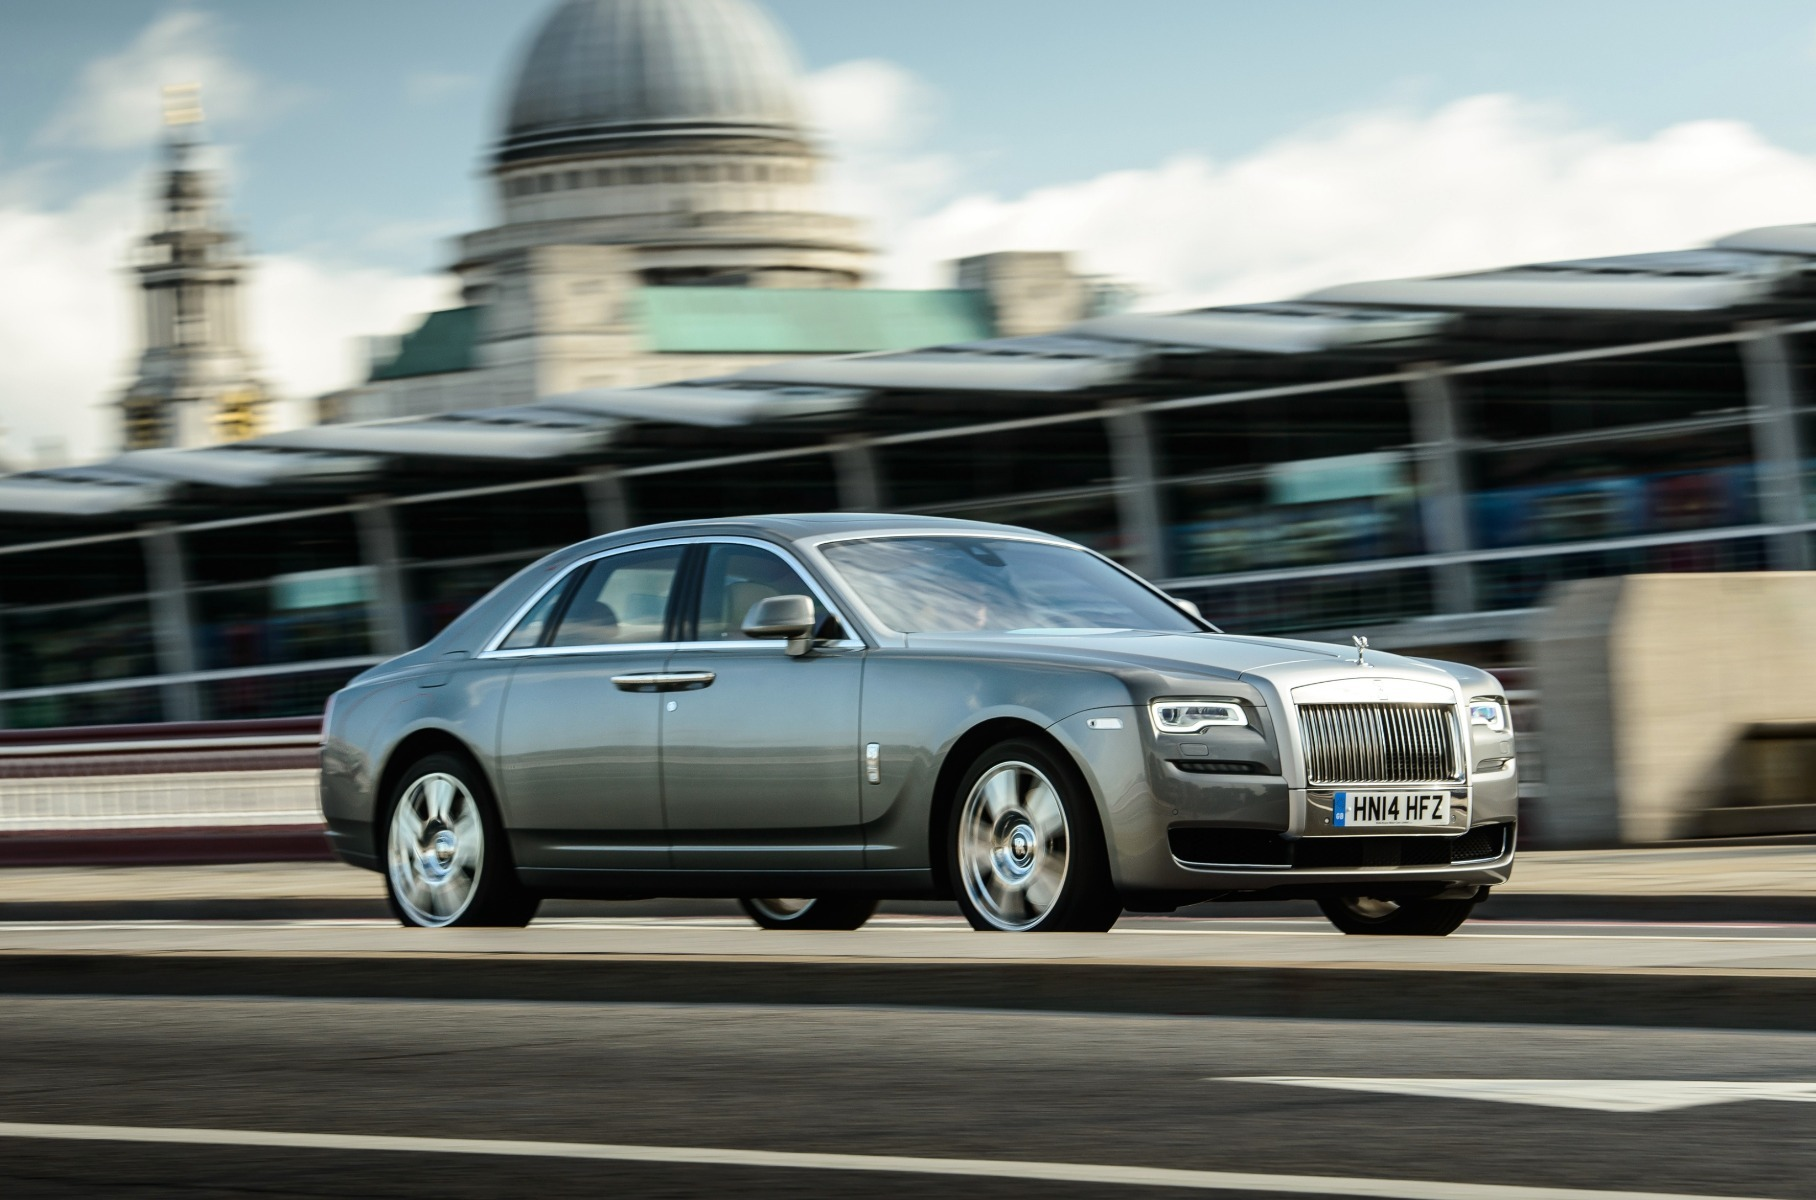 Новый Rolls-Royce Ghost научили шептать